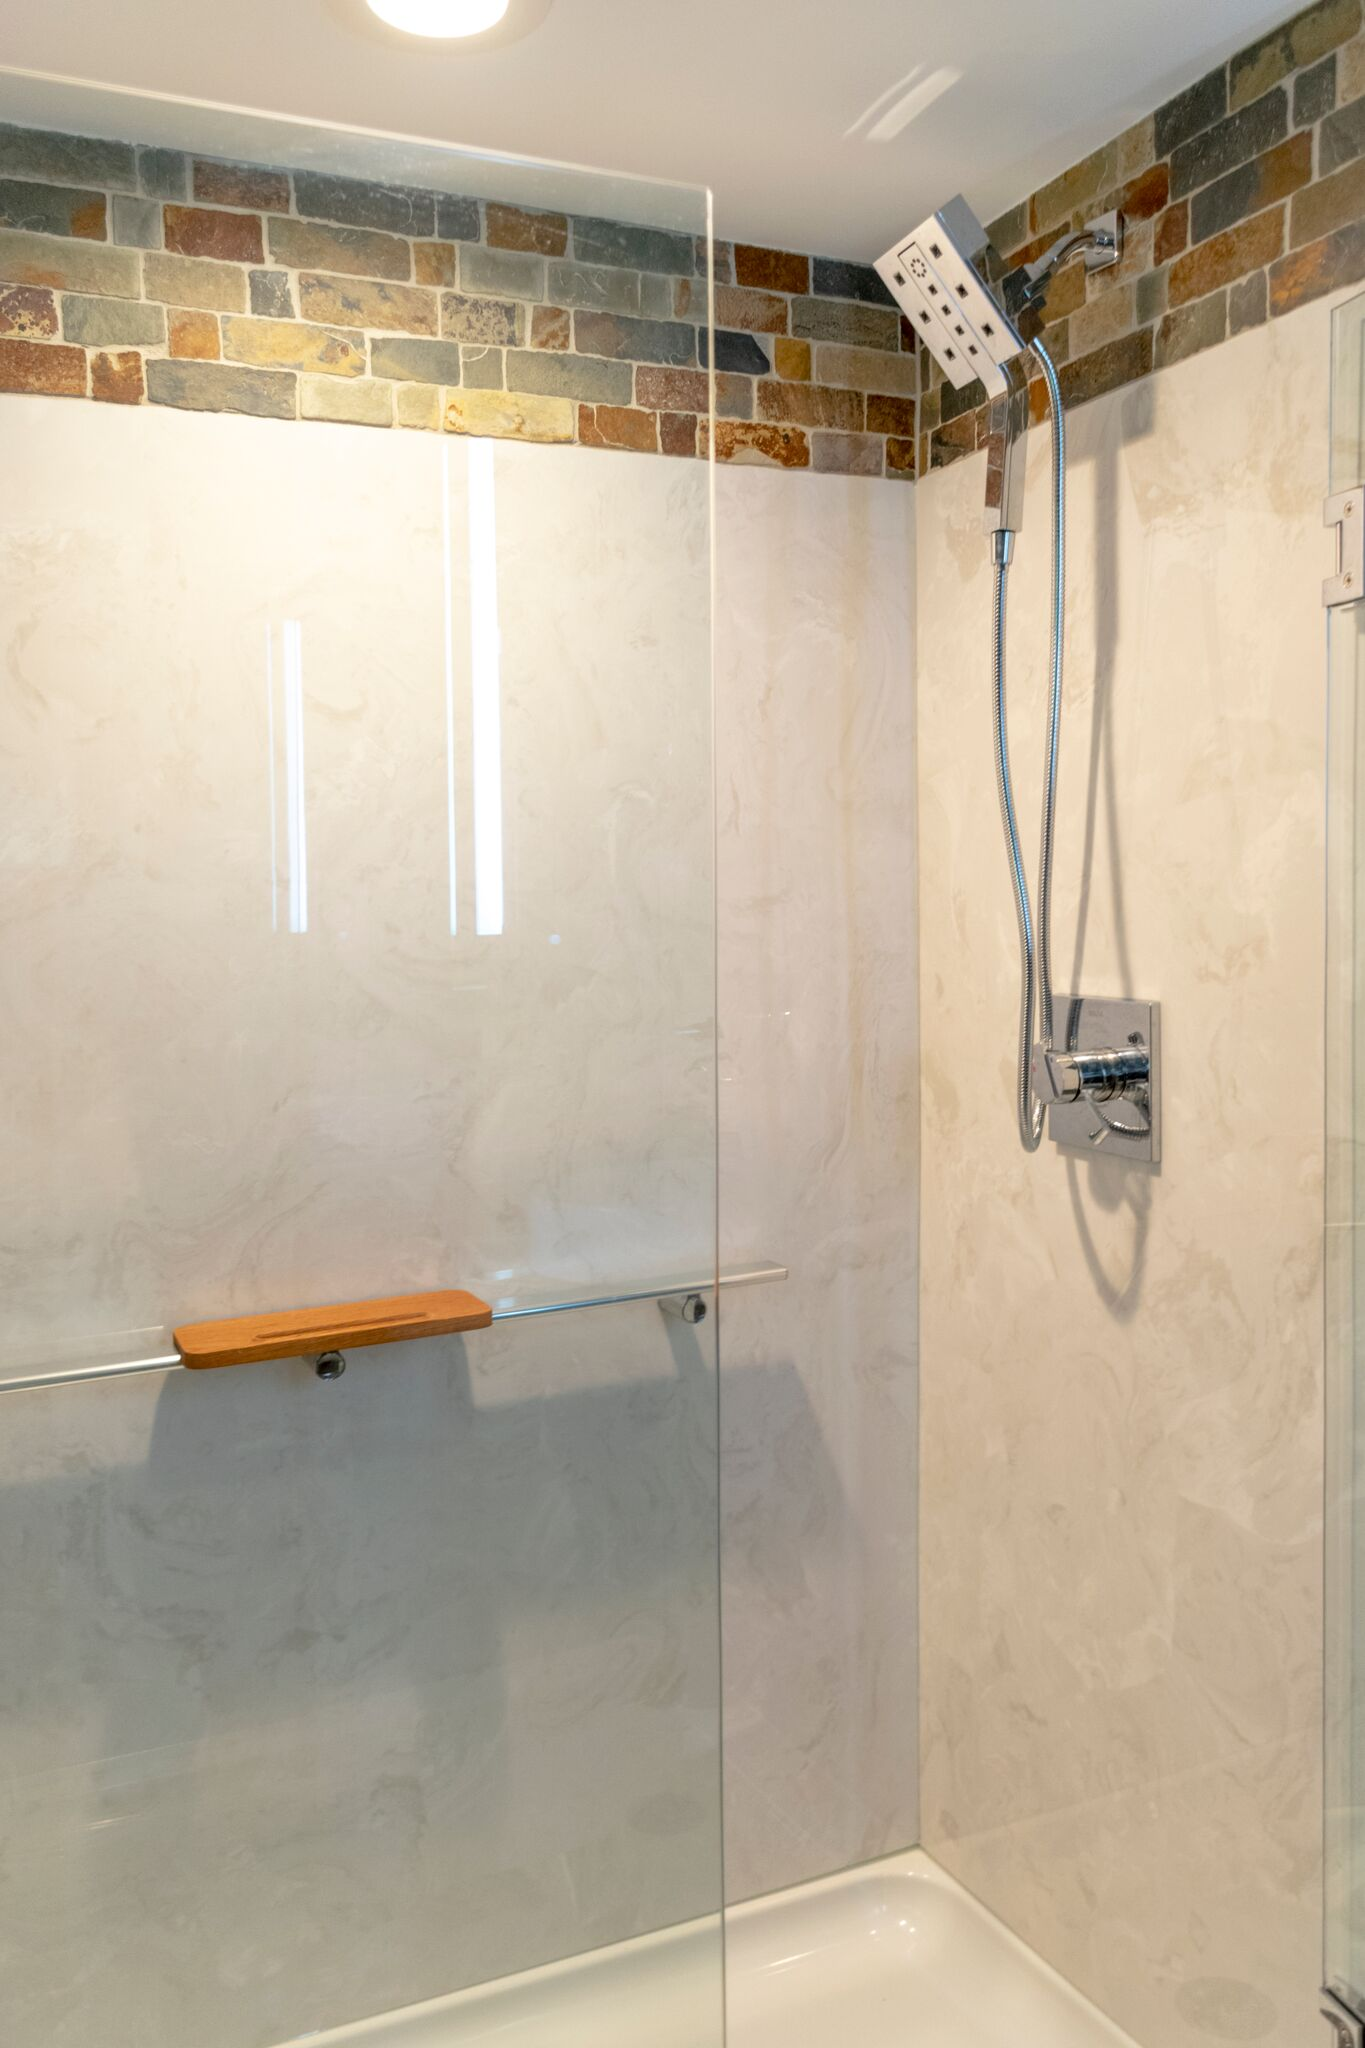 New Bath Remodel with Shower Head